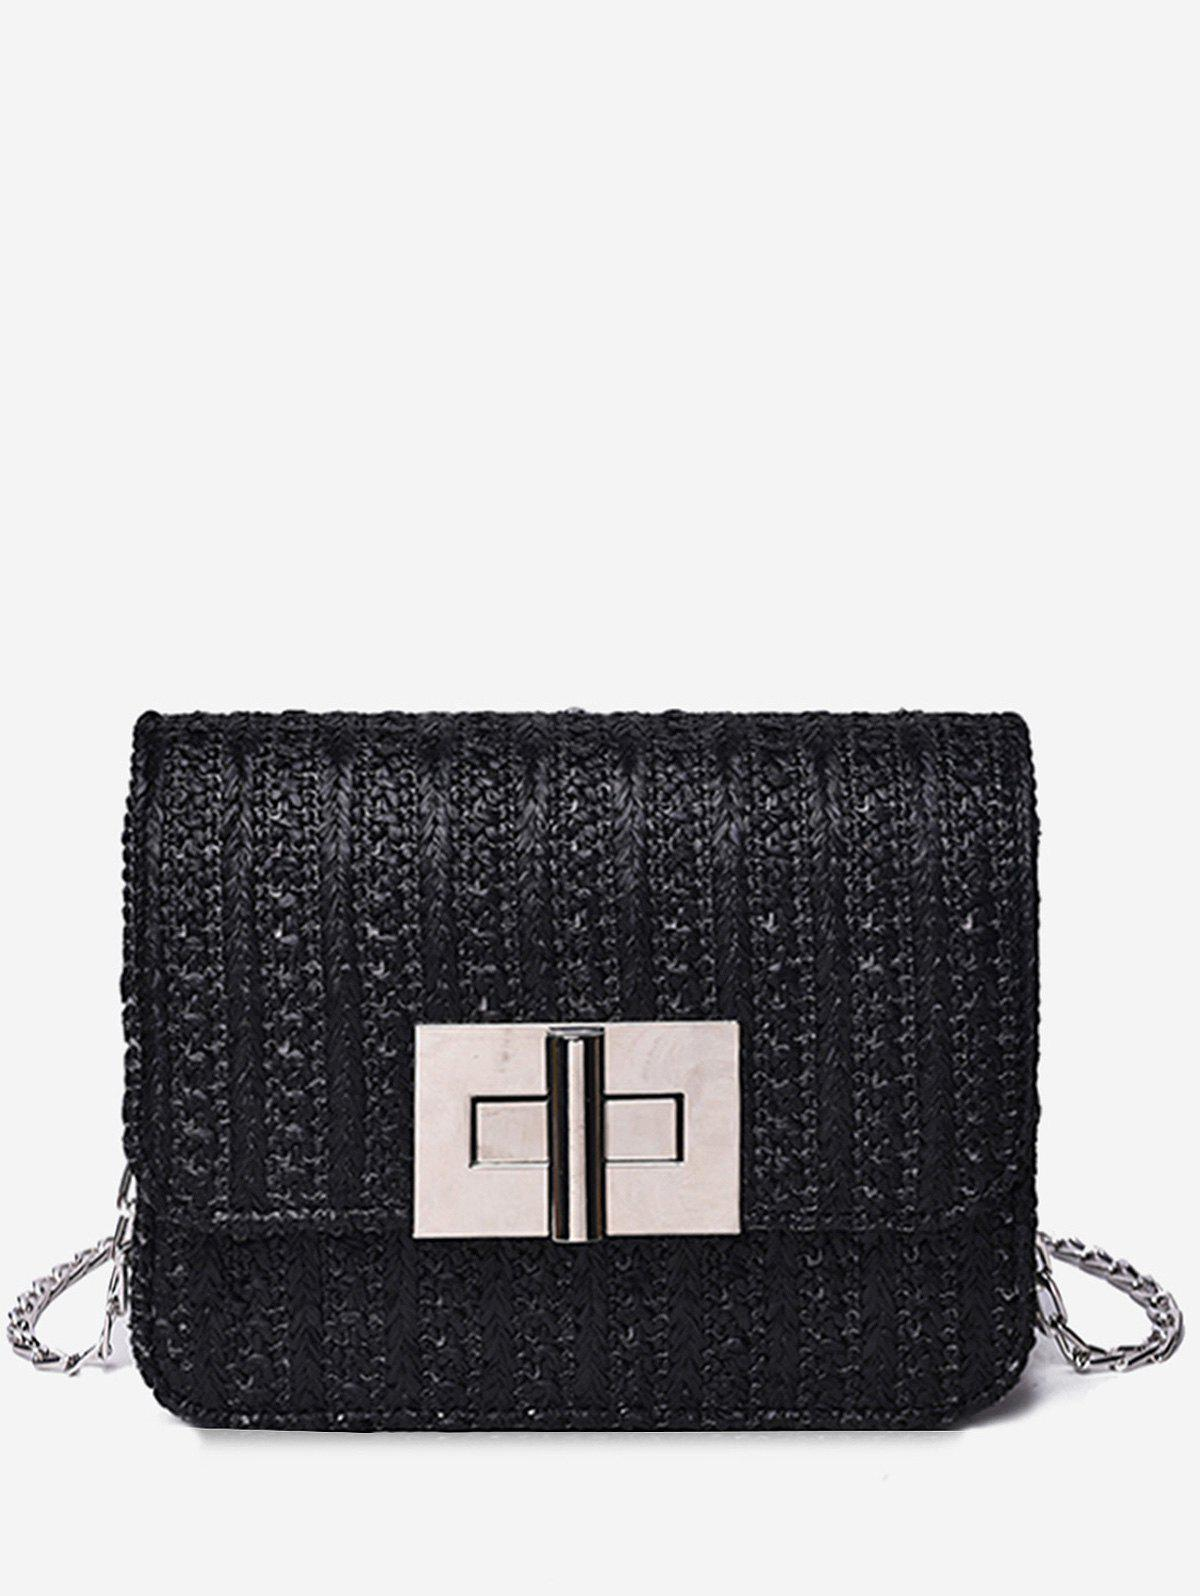 Online Twist Lock Flap Minimalist Chic Chain Bag